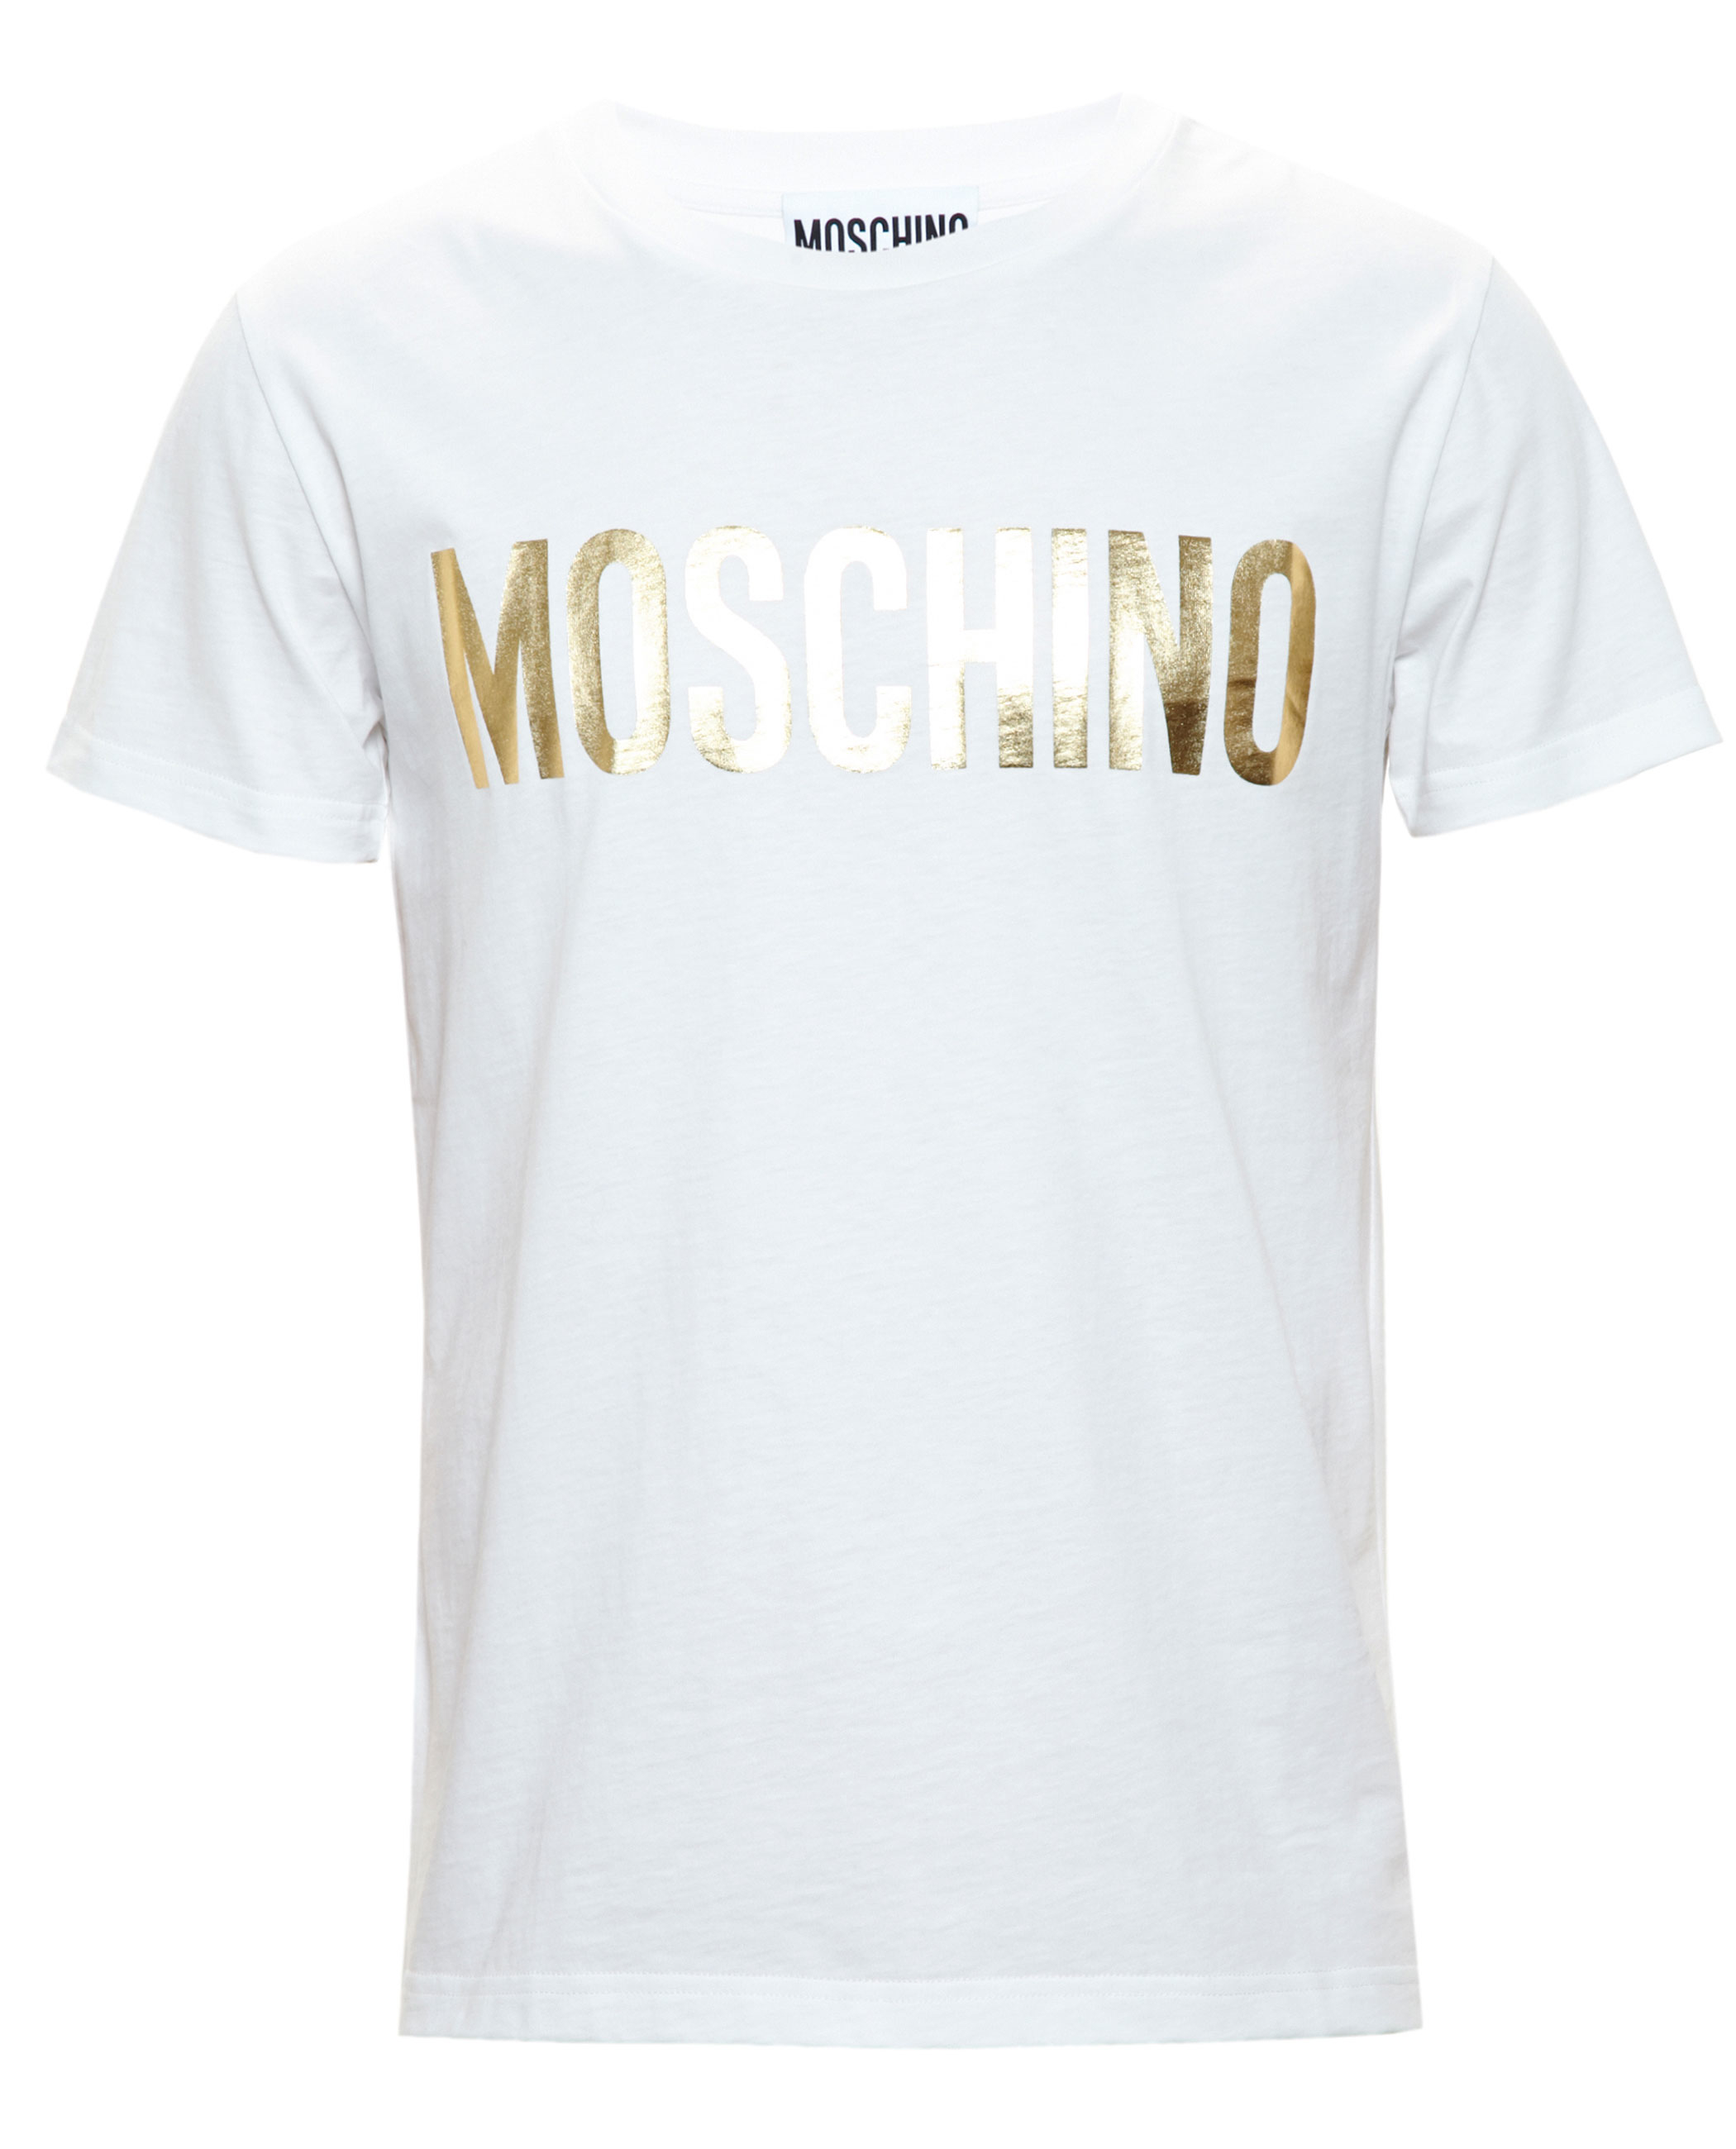 moschino logo t shirt in white for men lyst. Black Bedroom Furniture Sets. Home Design Ideas